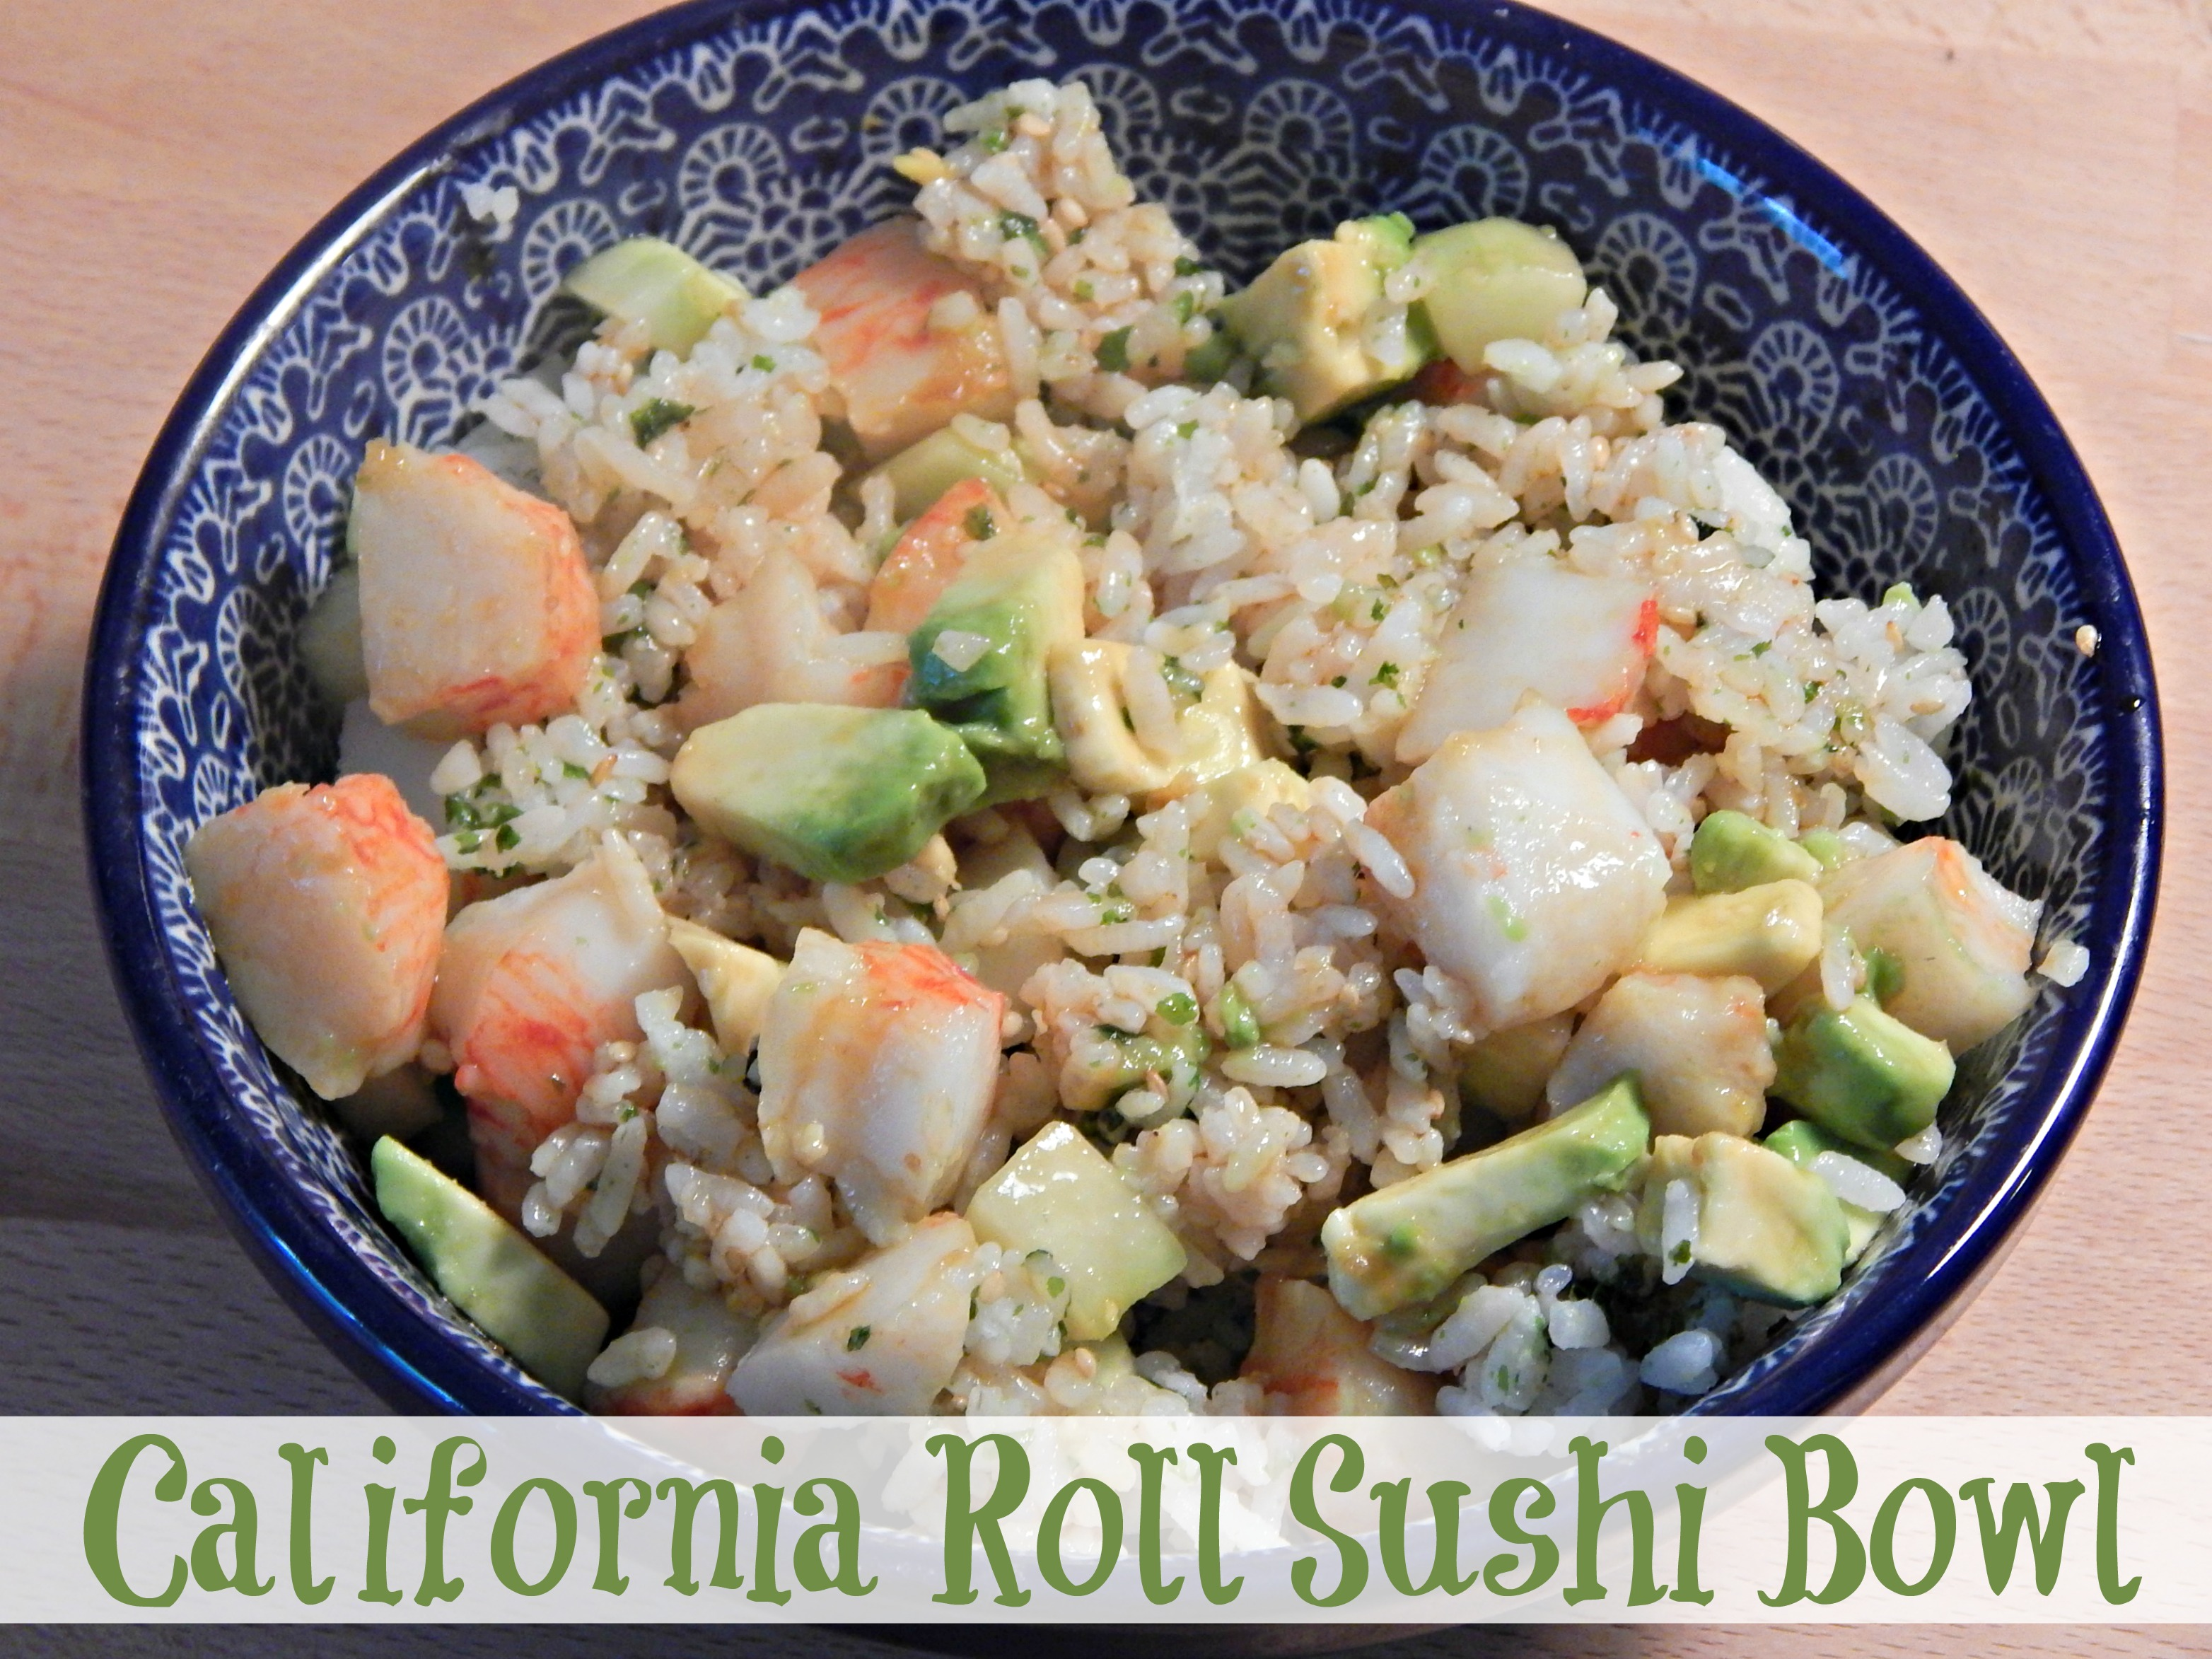 California Roll Sushi Bowl Final